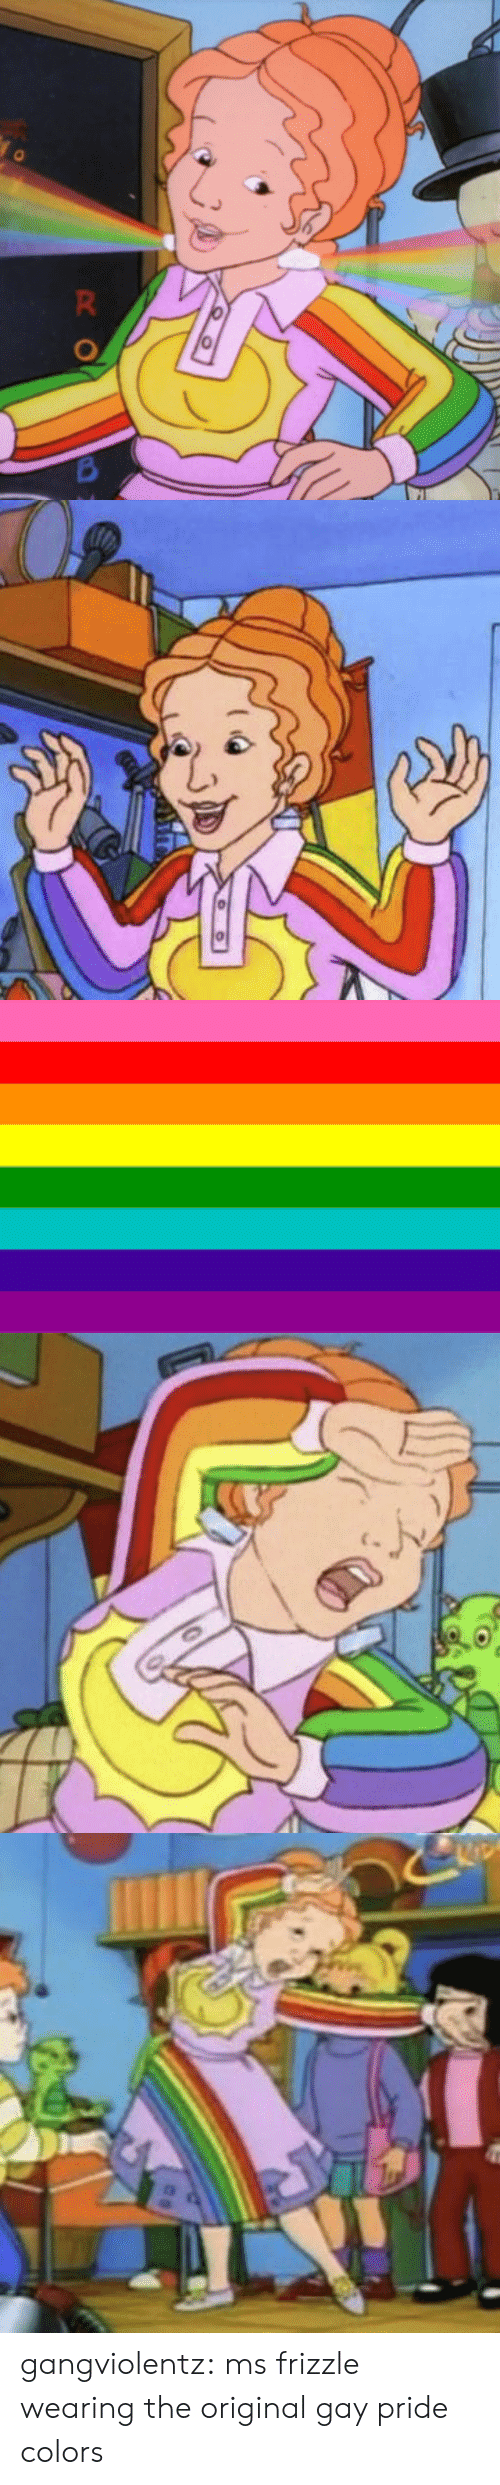 Target, Tumblr, and Ms. Frizzle: gangviolentz:  ms frizzle wearing the original gay pride colors